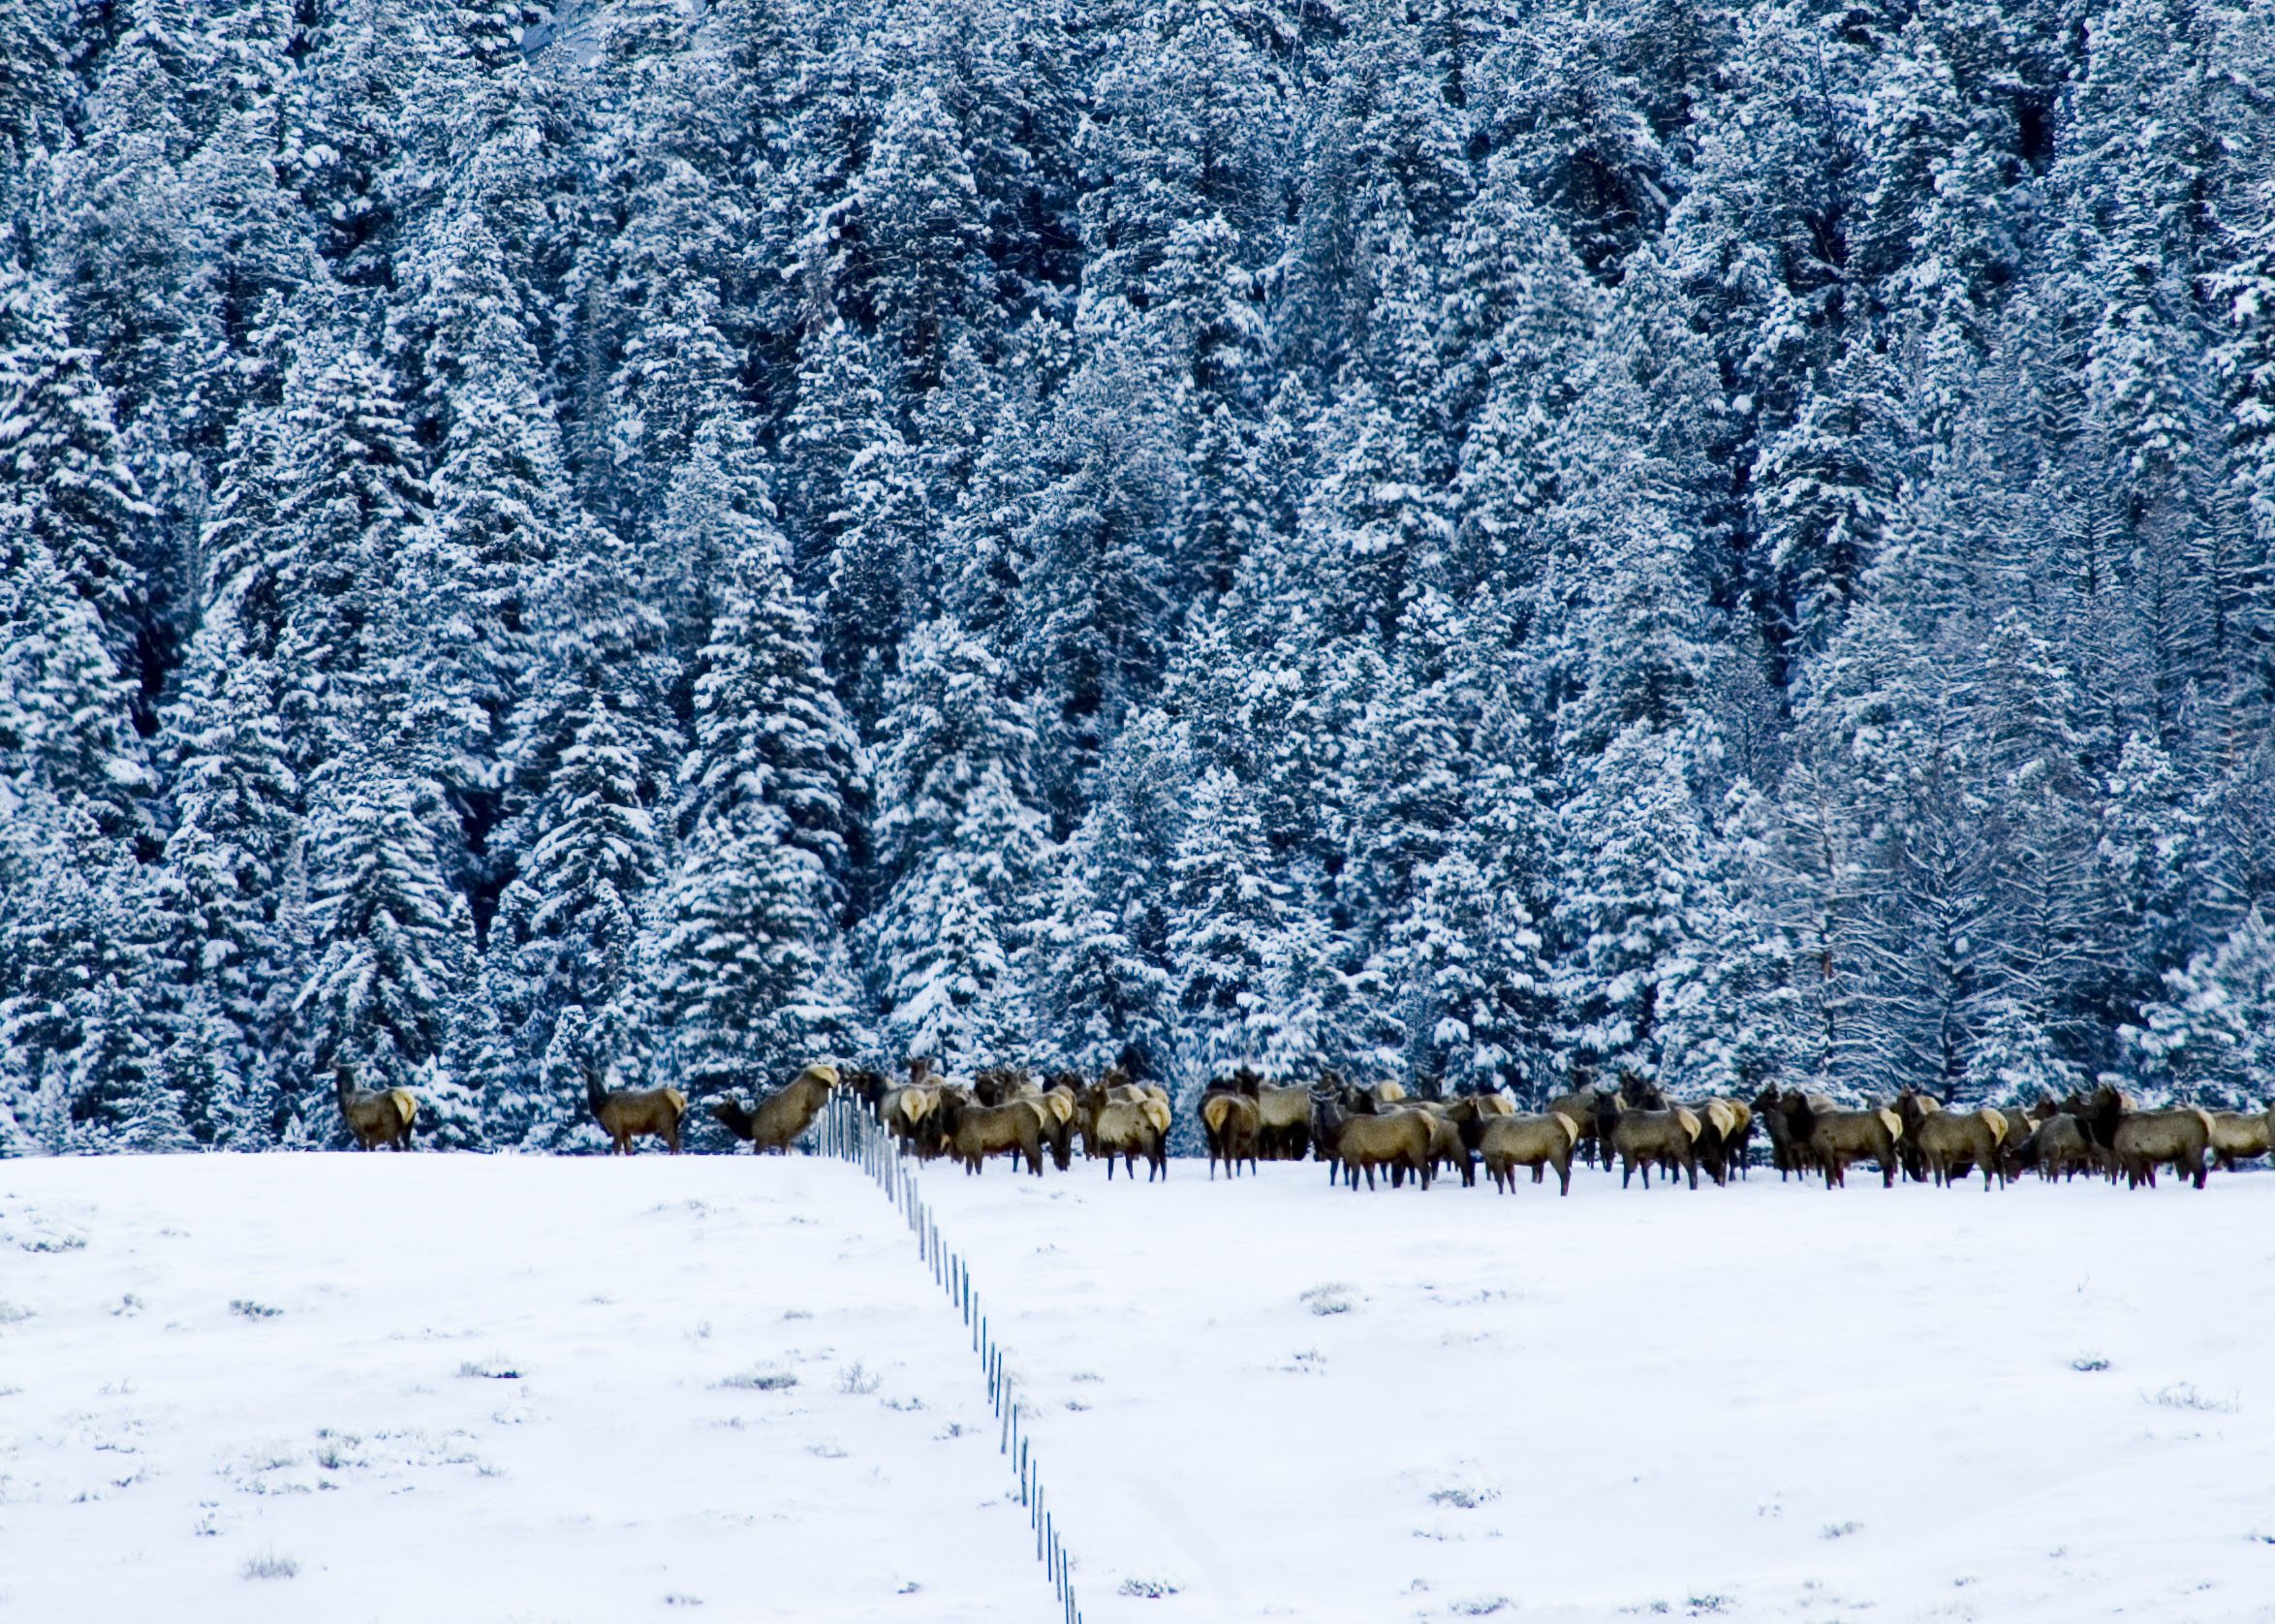 Elk fence crossing